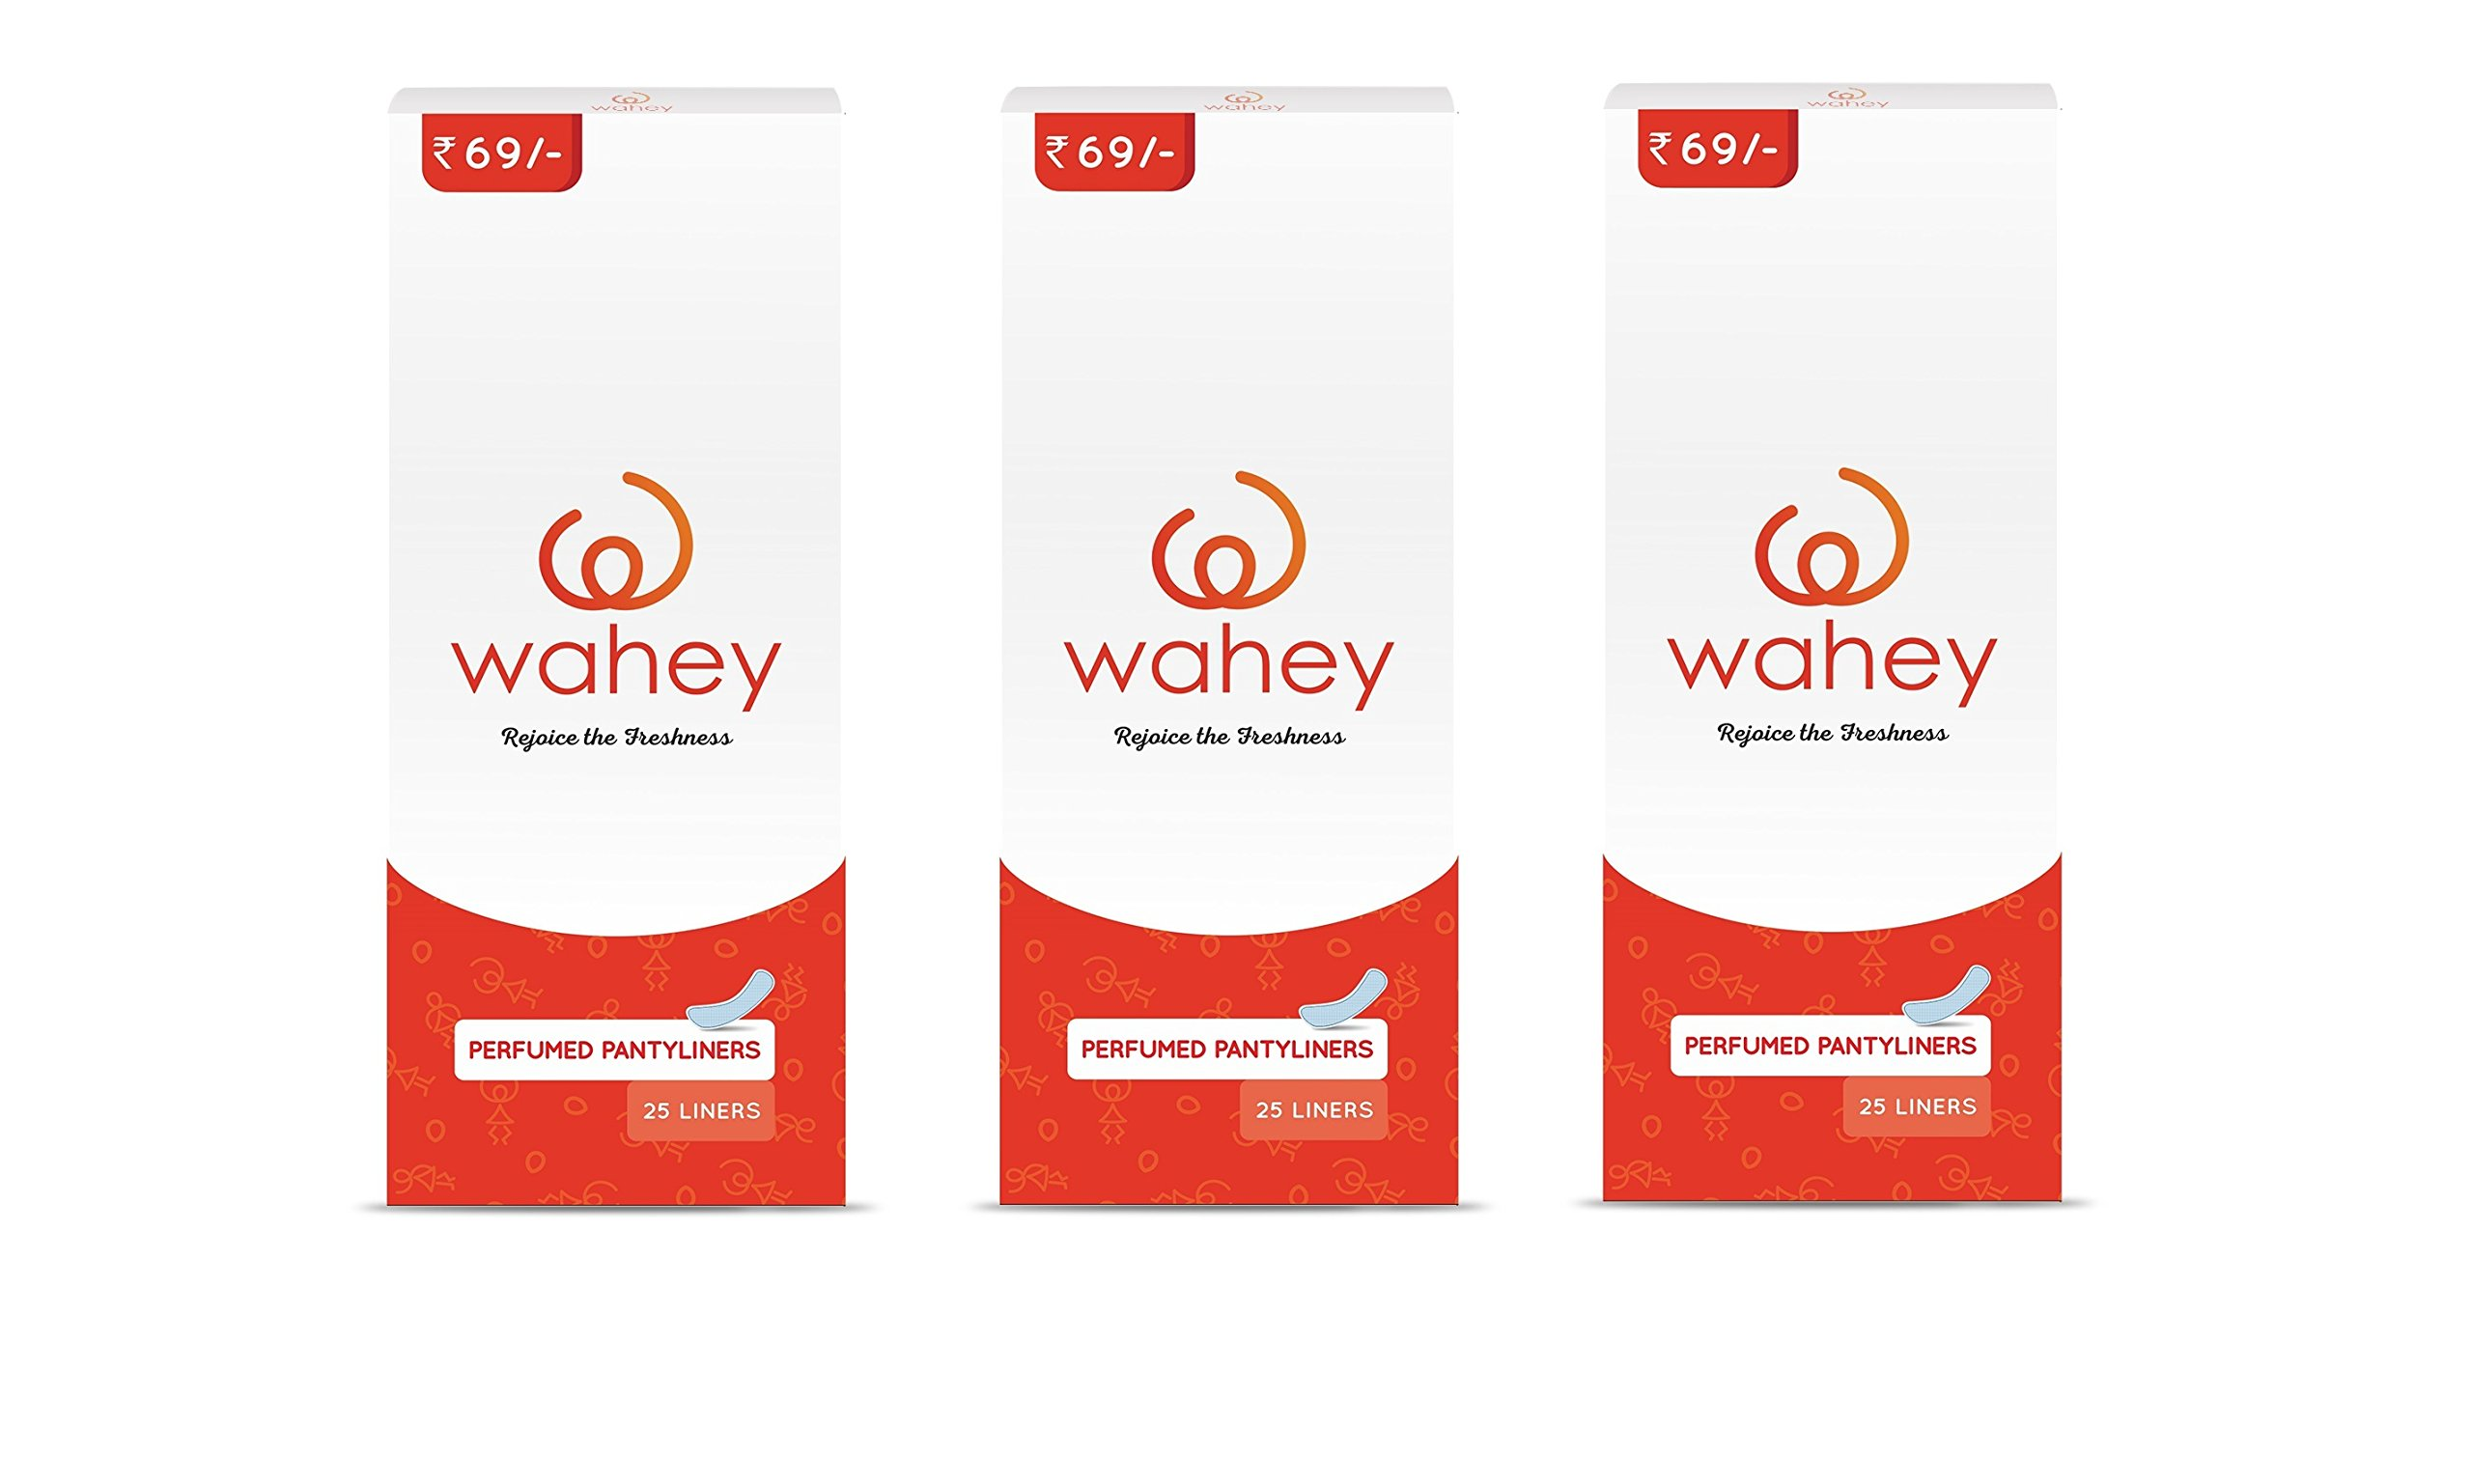 Wahey Perfumed Panty Liners/Pantyliners With Cottony Covering, Pack Of 3 (75 pcs) product image